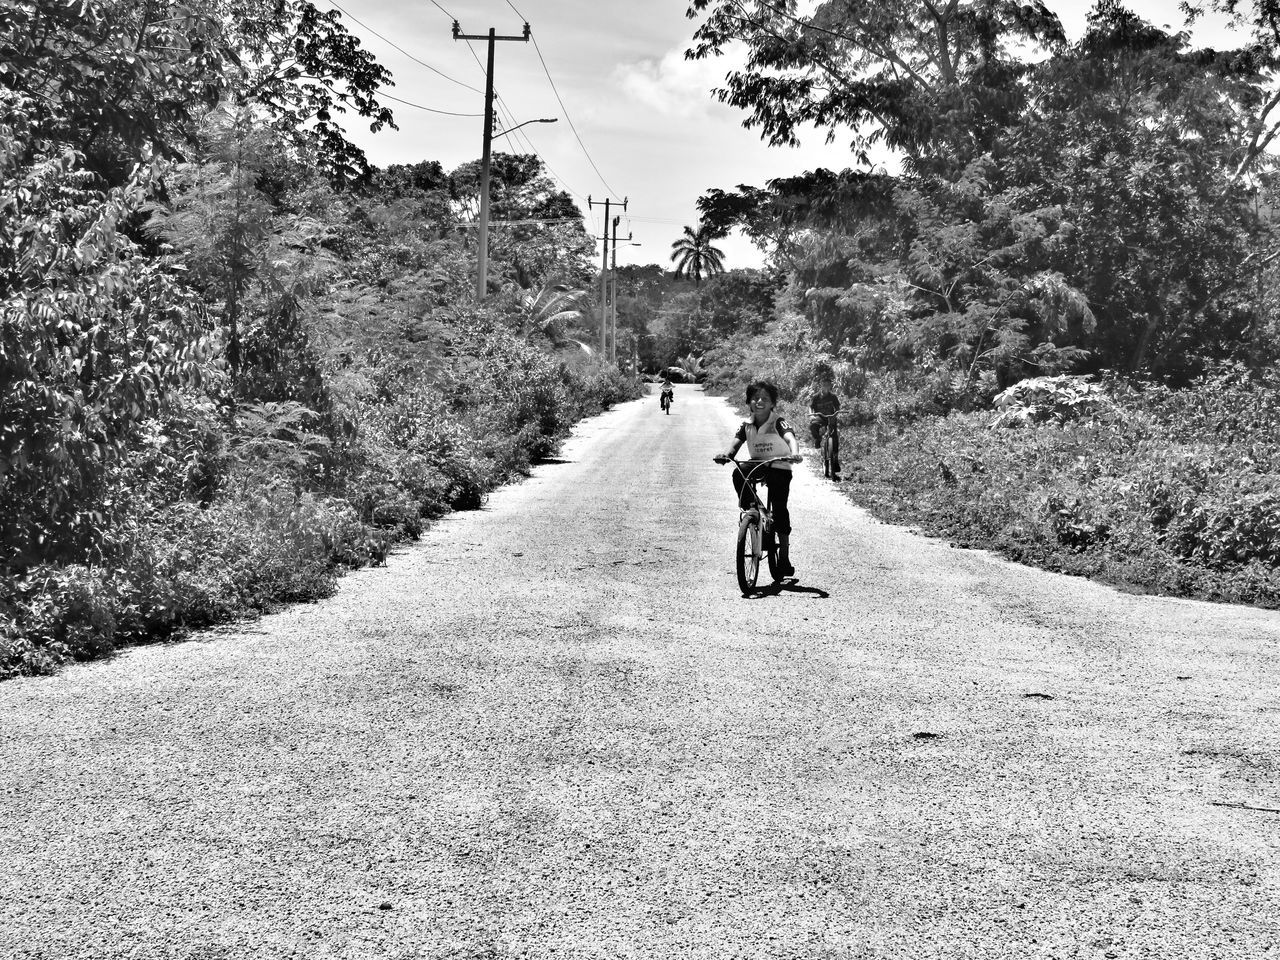 riding, real people, transportation, tree, bicycle, road, cycling, full length, day, one person, leisure activity, walking, helmet, outdoors, lifestyles, land vehicle, men, growth, nature, sky, people